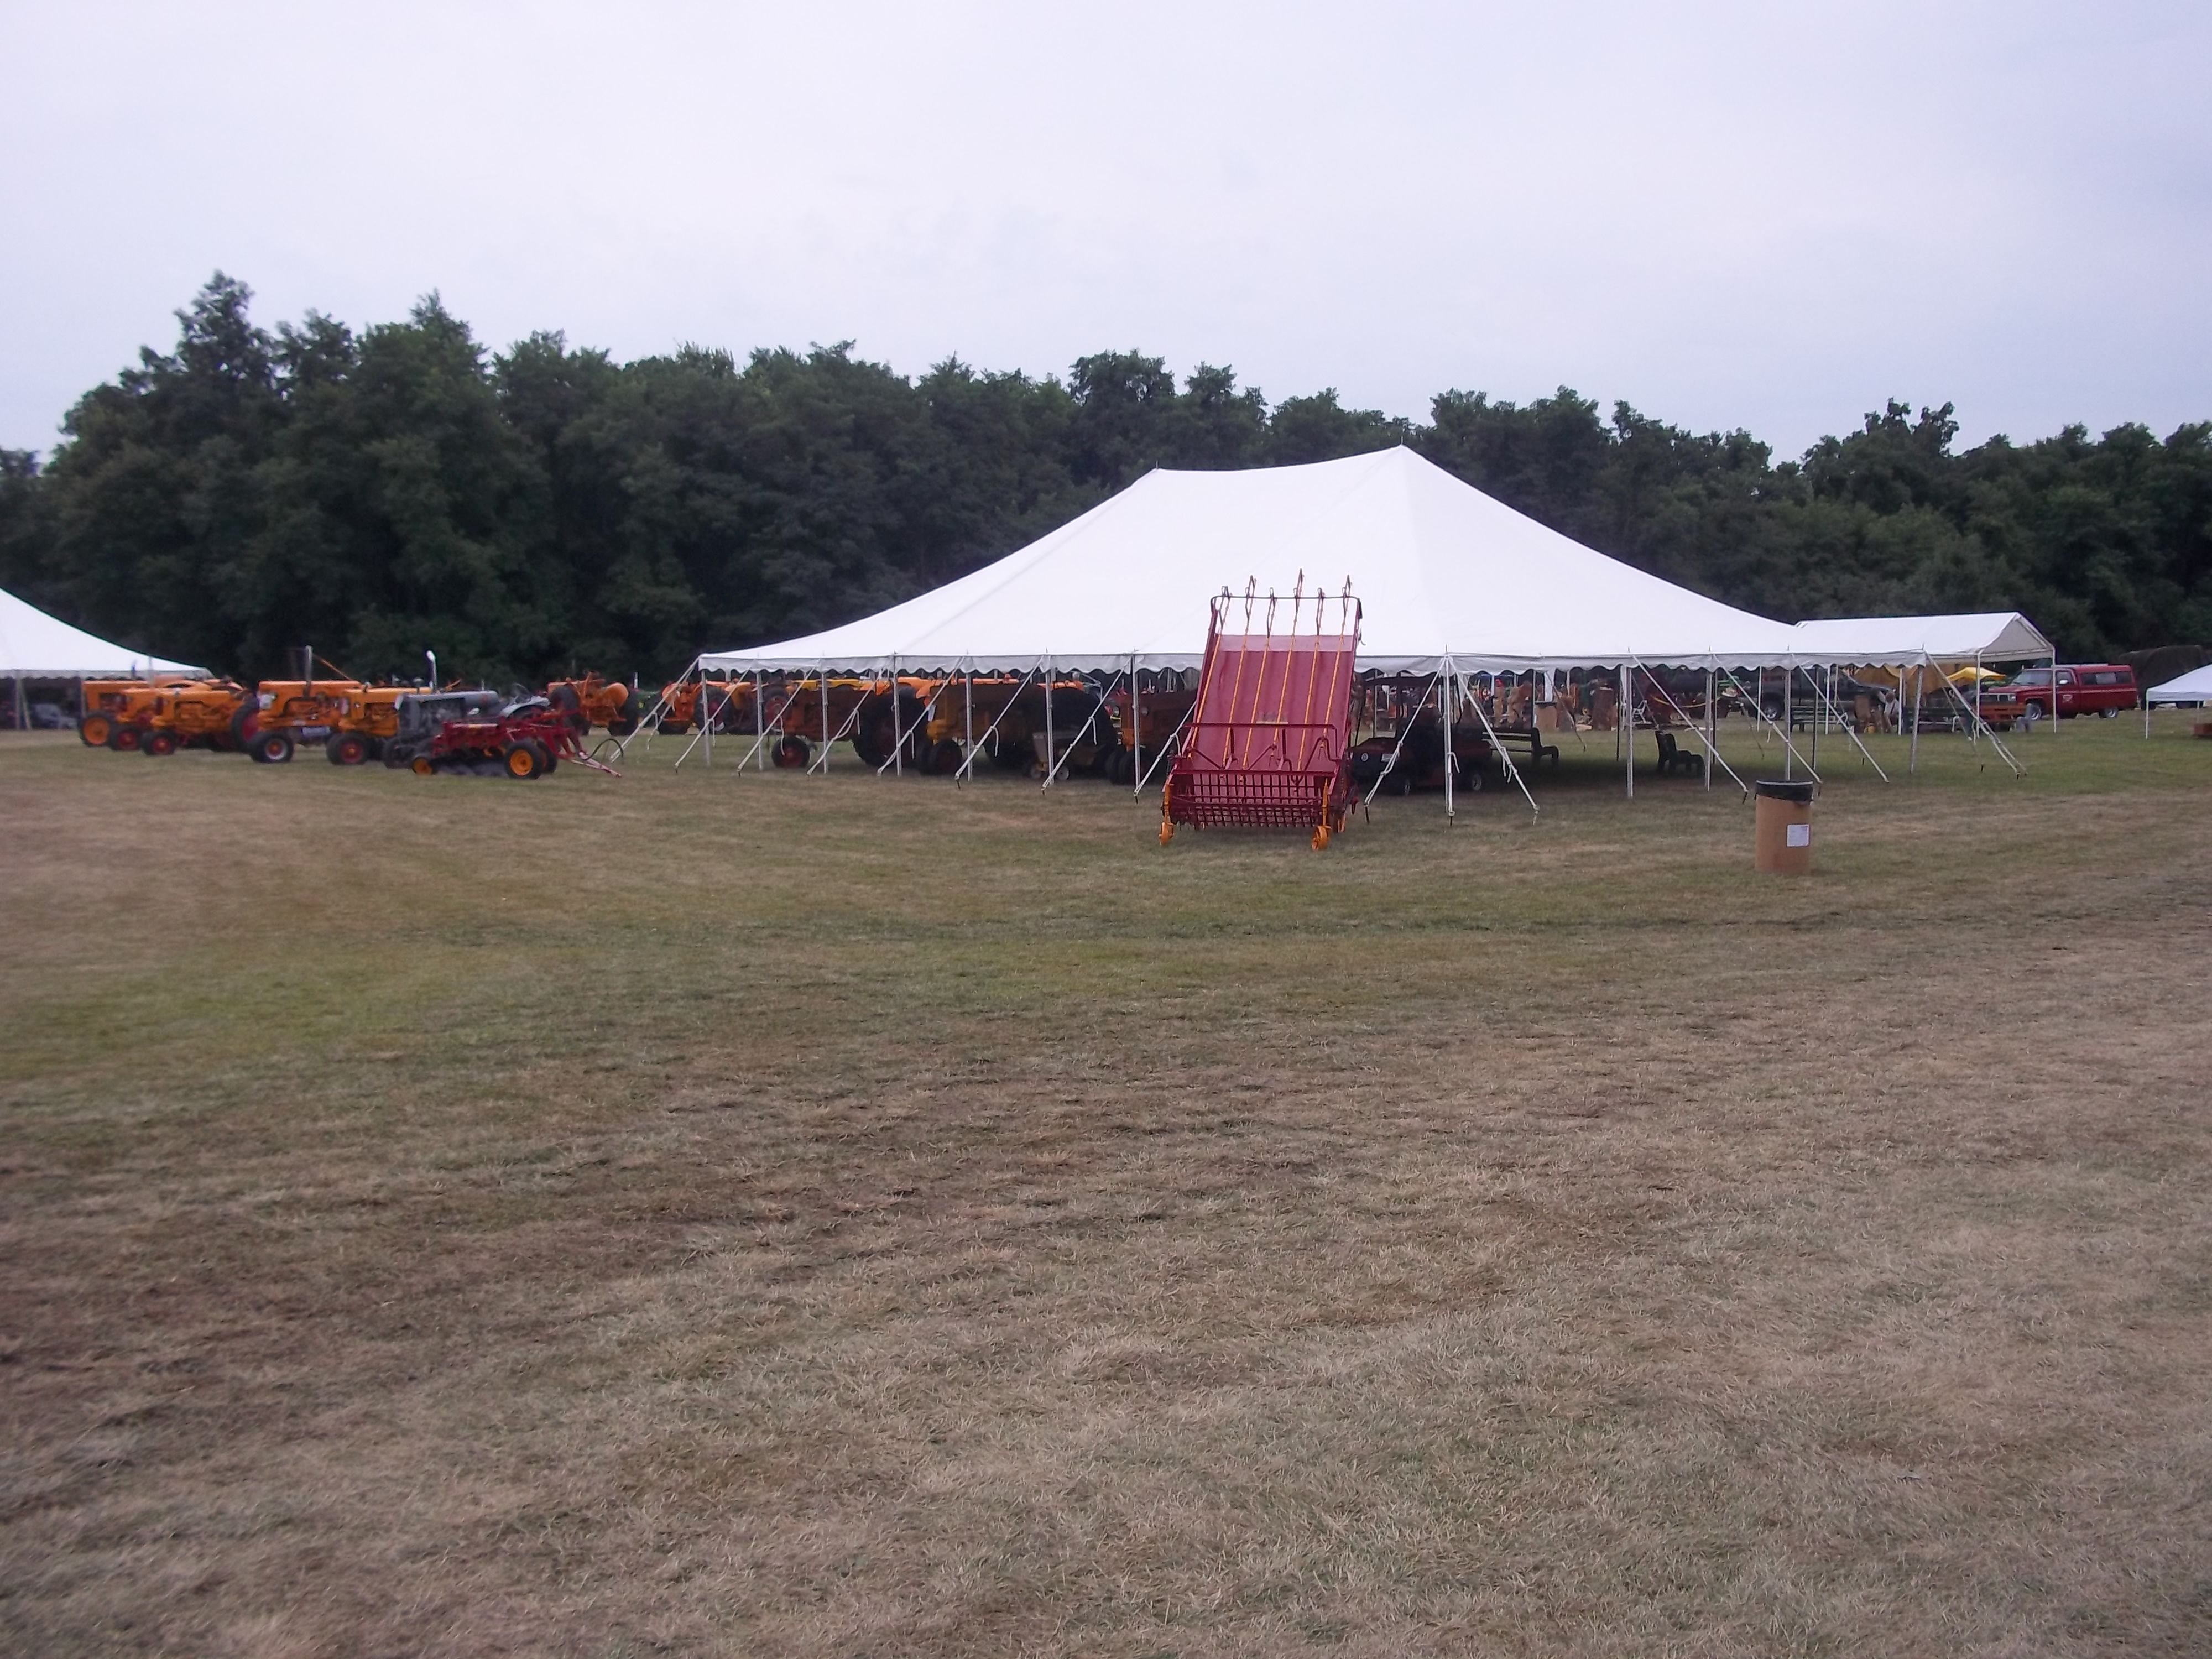 MM feature tent & MM feature tent | Minneapolis Moline | Pinterest | Tents and Tractor